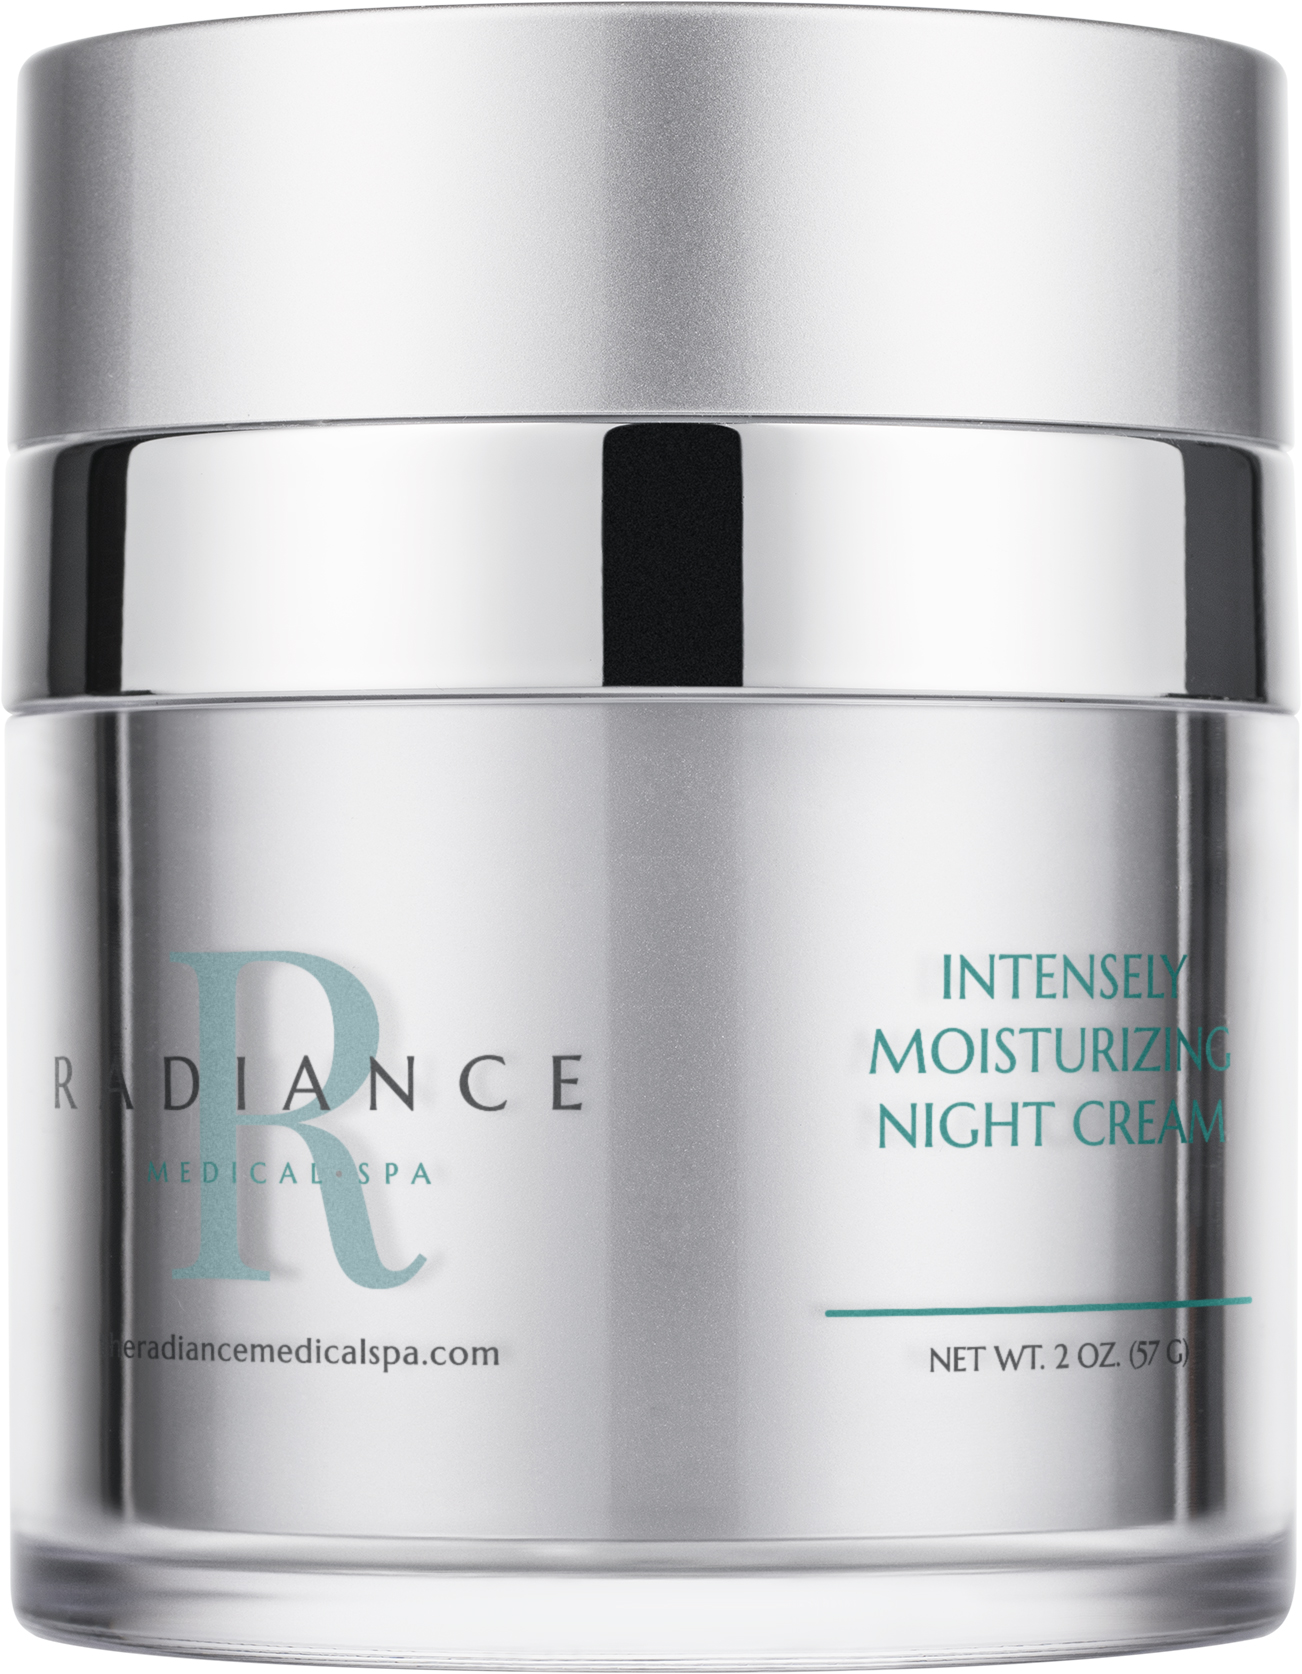 Intensely Moisturizing Night Cream